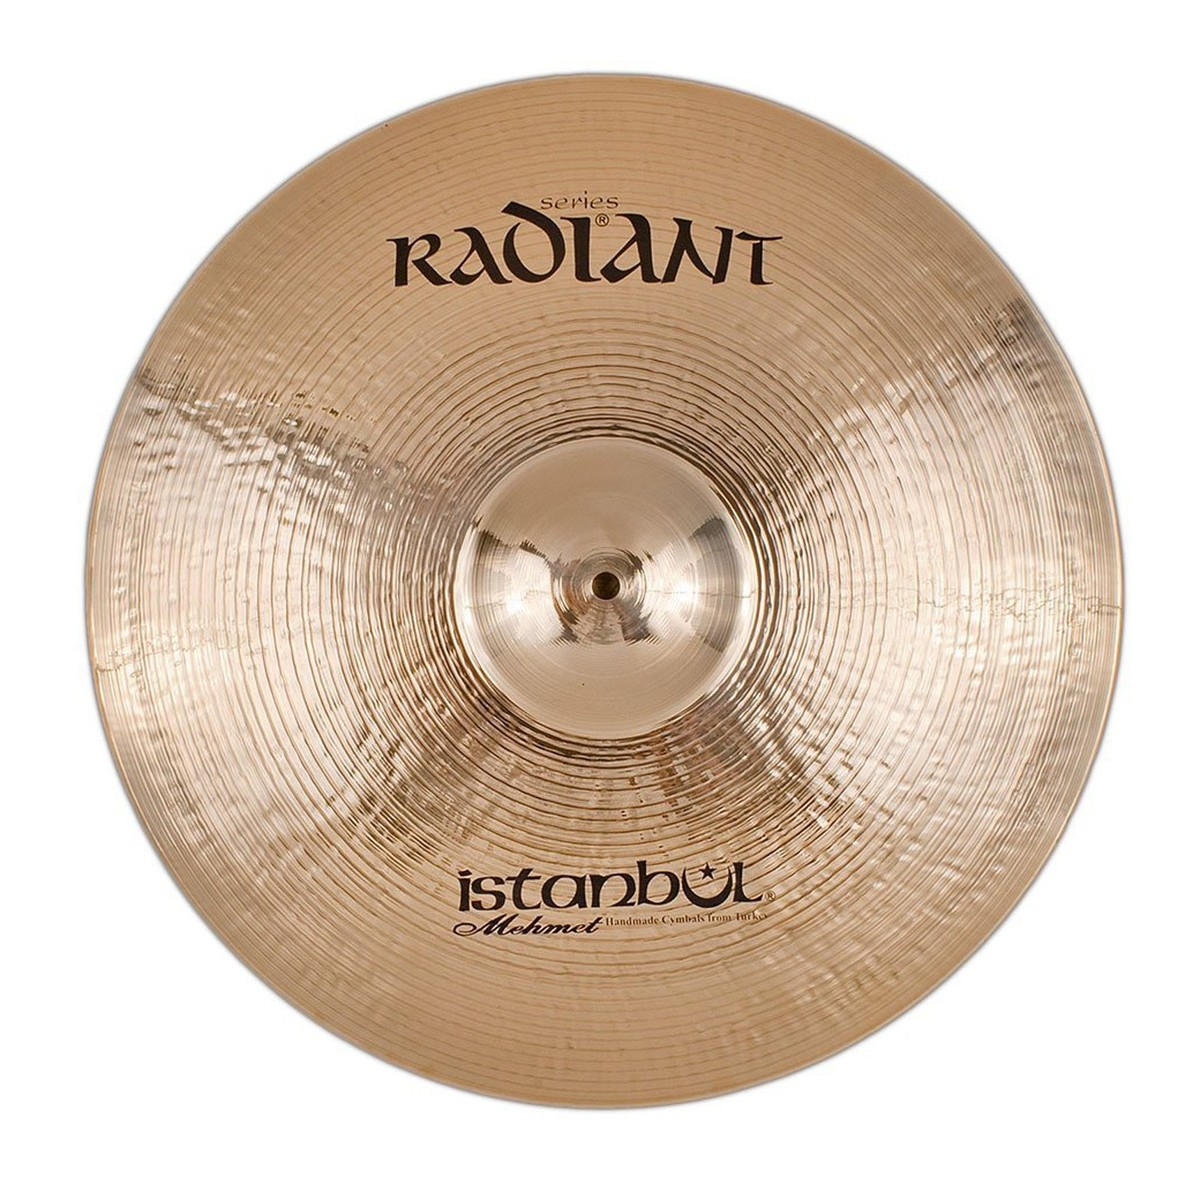 bd5593a9ba8a Istanbul Mehmet Radiant 16   Medium Crash Cymbal at Gear4music